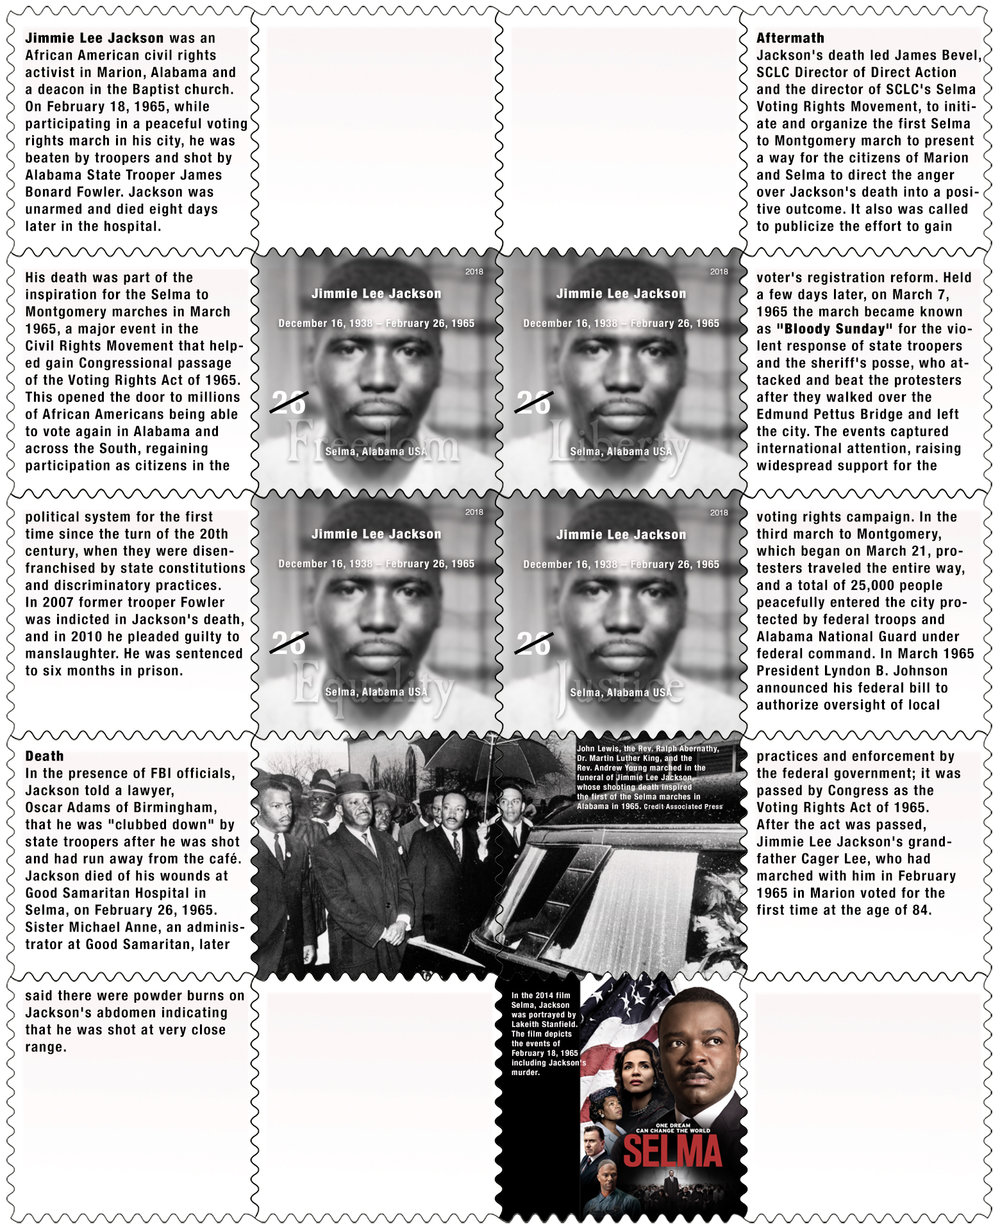 Jimmie Lee Jackson, James Long